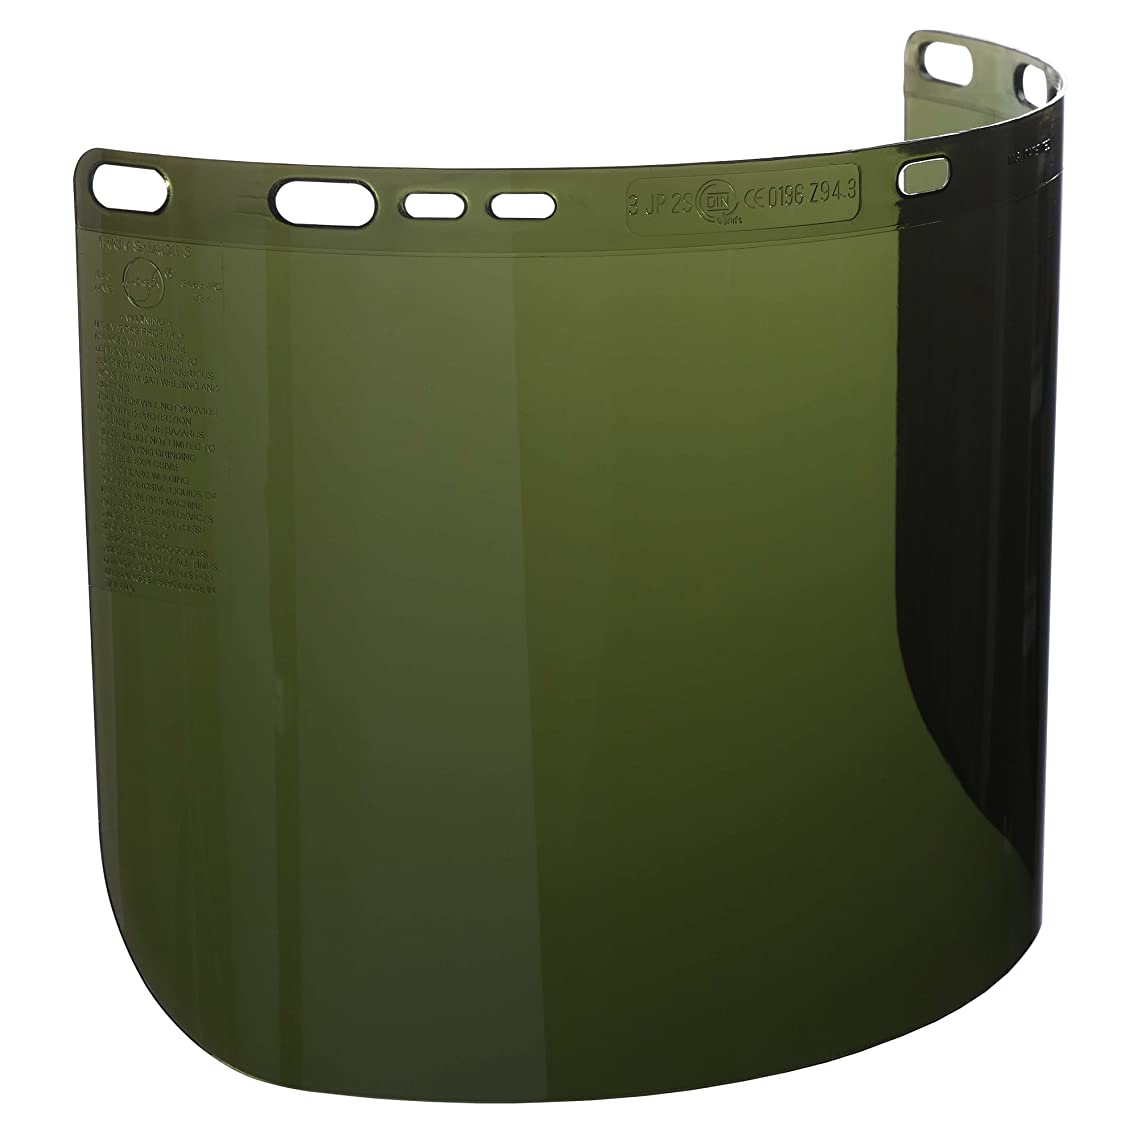 """Jackson Safety F50 Specialty High Impact Face Shield (26262), Polycarbonate, 8"""" x 15.5"""" x 0.06"""", IRUV 5.0, Face Protection, Unbound, 12 Shields / Case qdmyblzp96130228"""